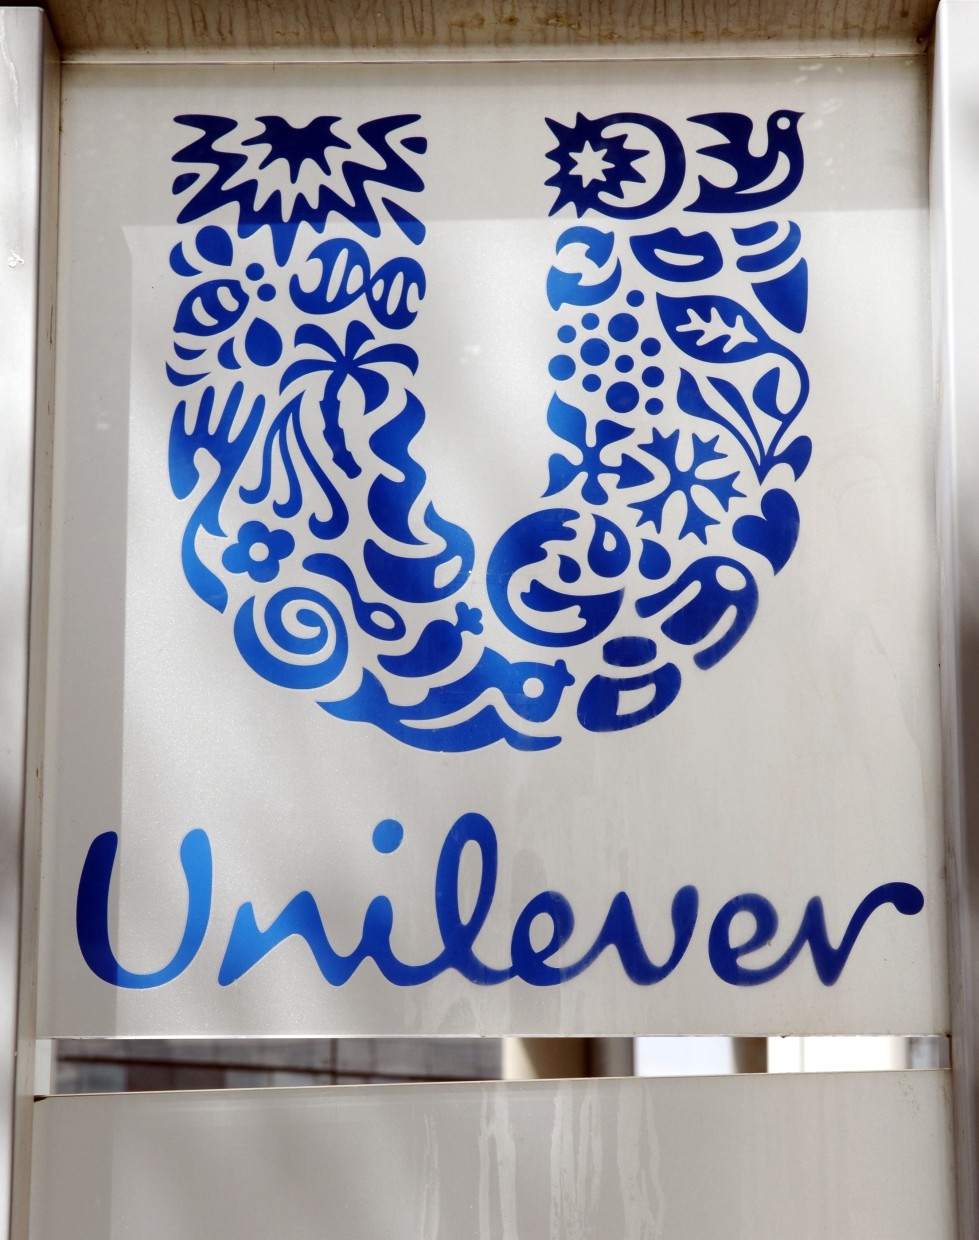 Unilever announces ambitious plastic pledges in bid to reduce environmental impact. Photo: AFP Relaxnews